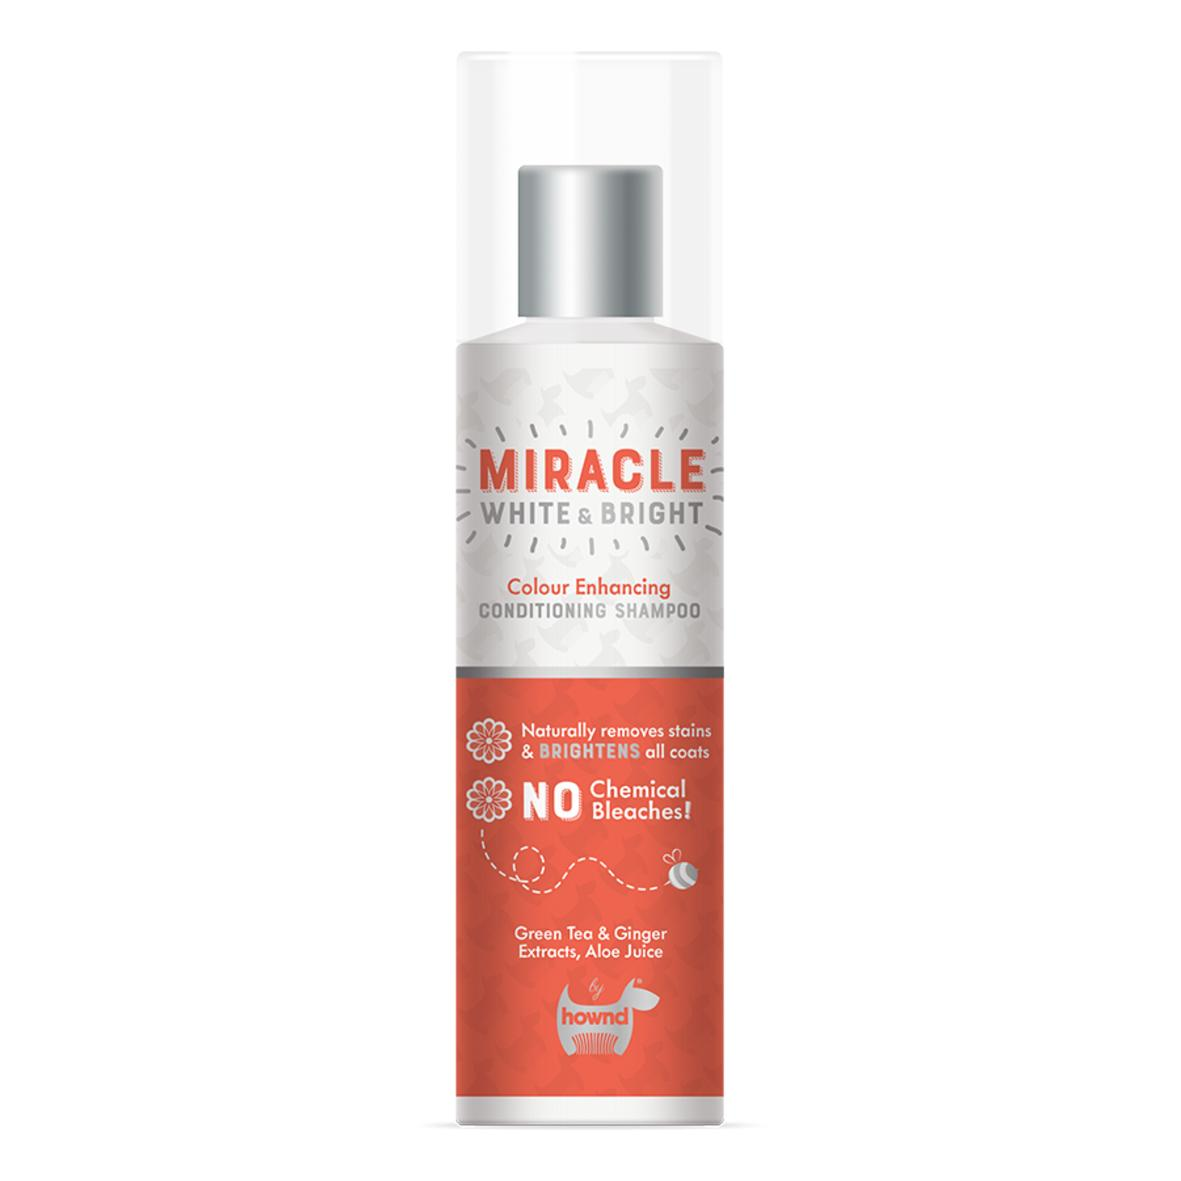 Hownd Miracle White and Bright Colour Enhancing Conditioning Shampoo 250ml